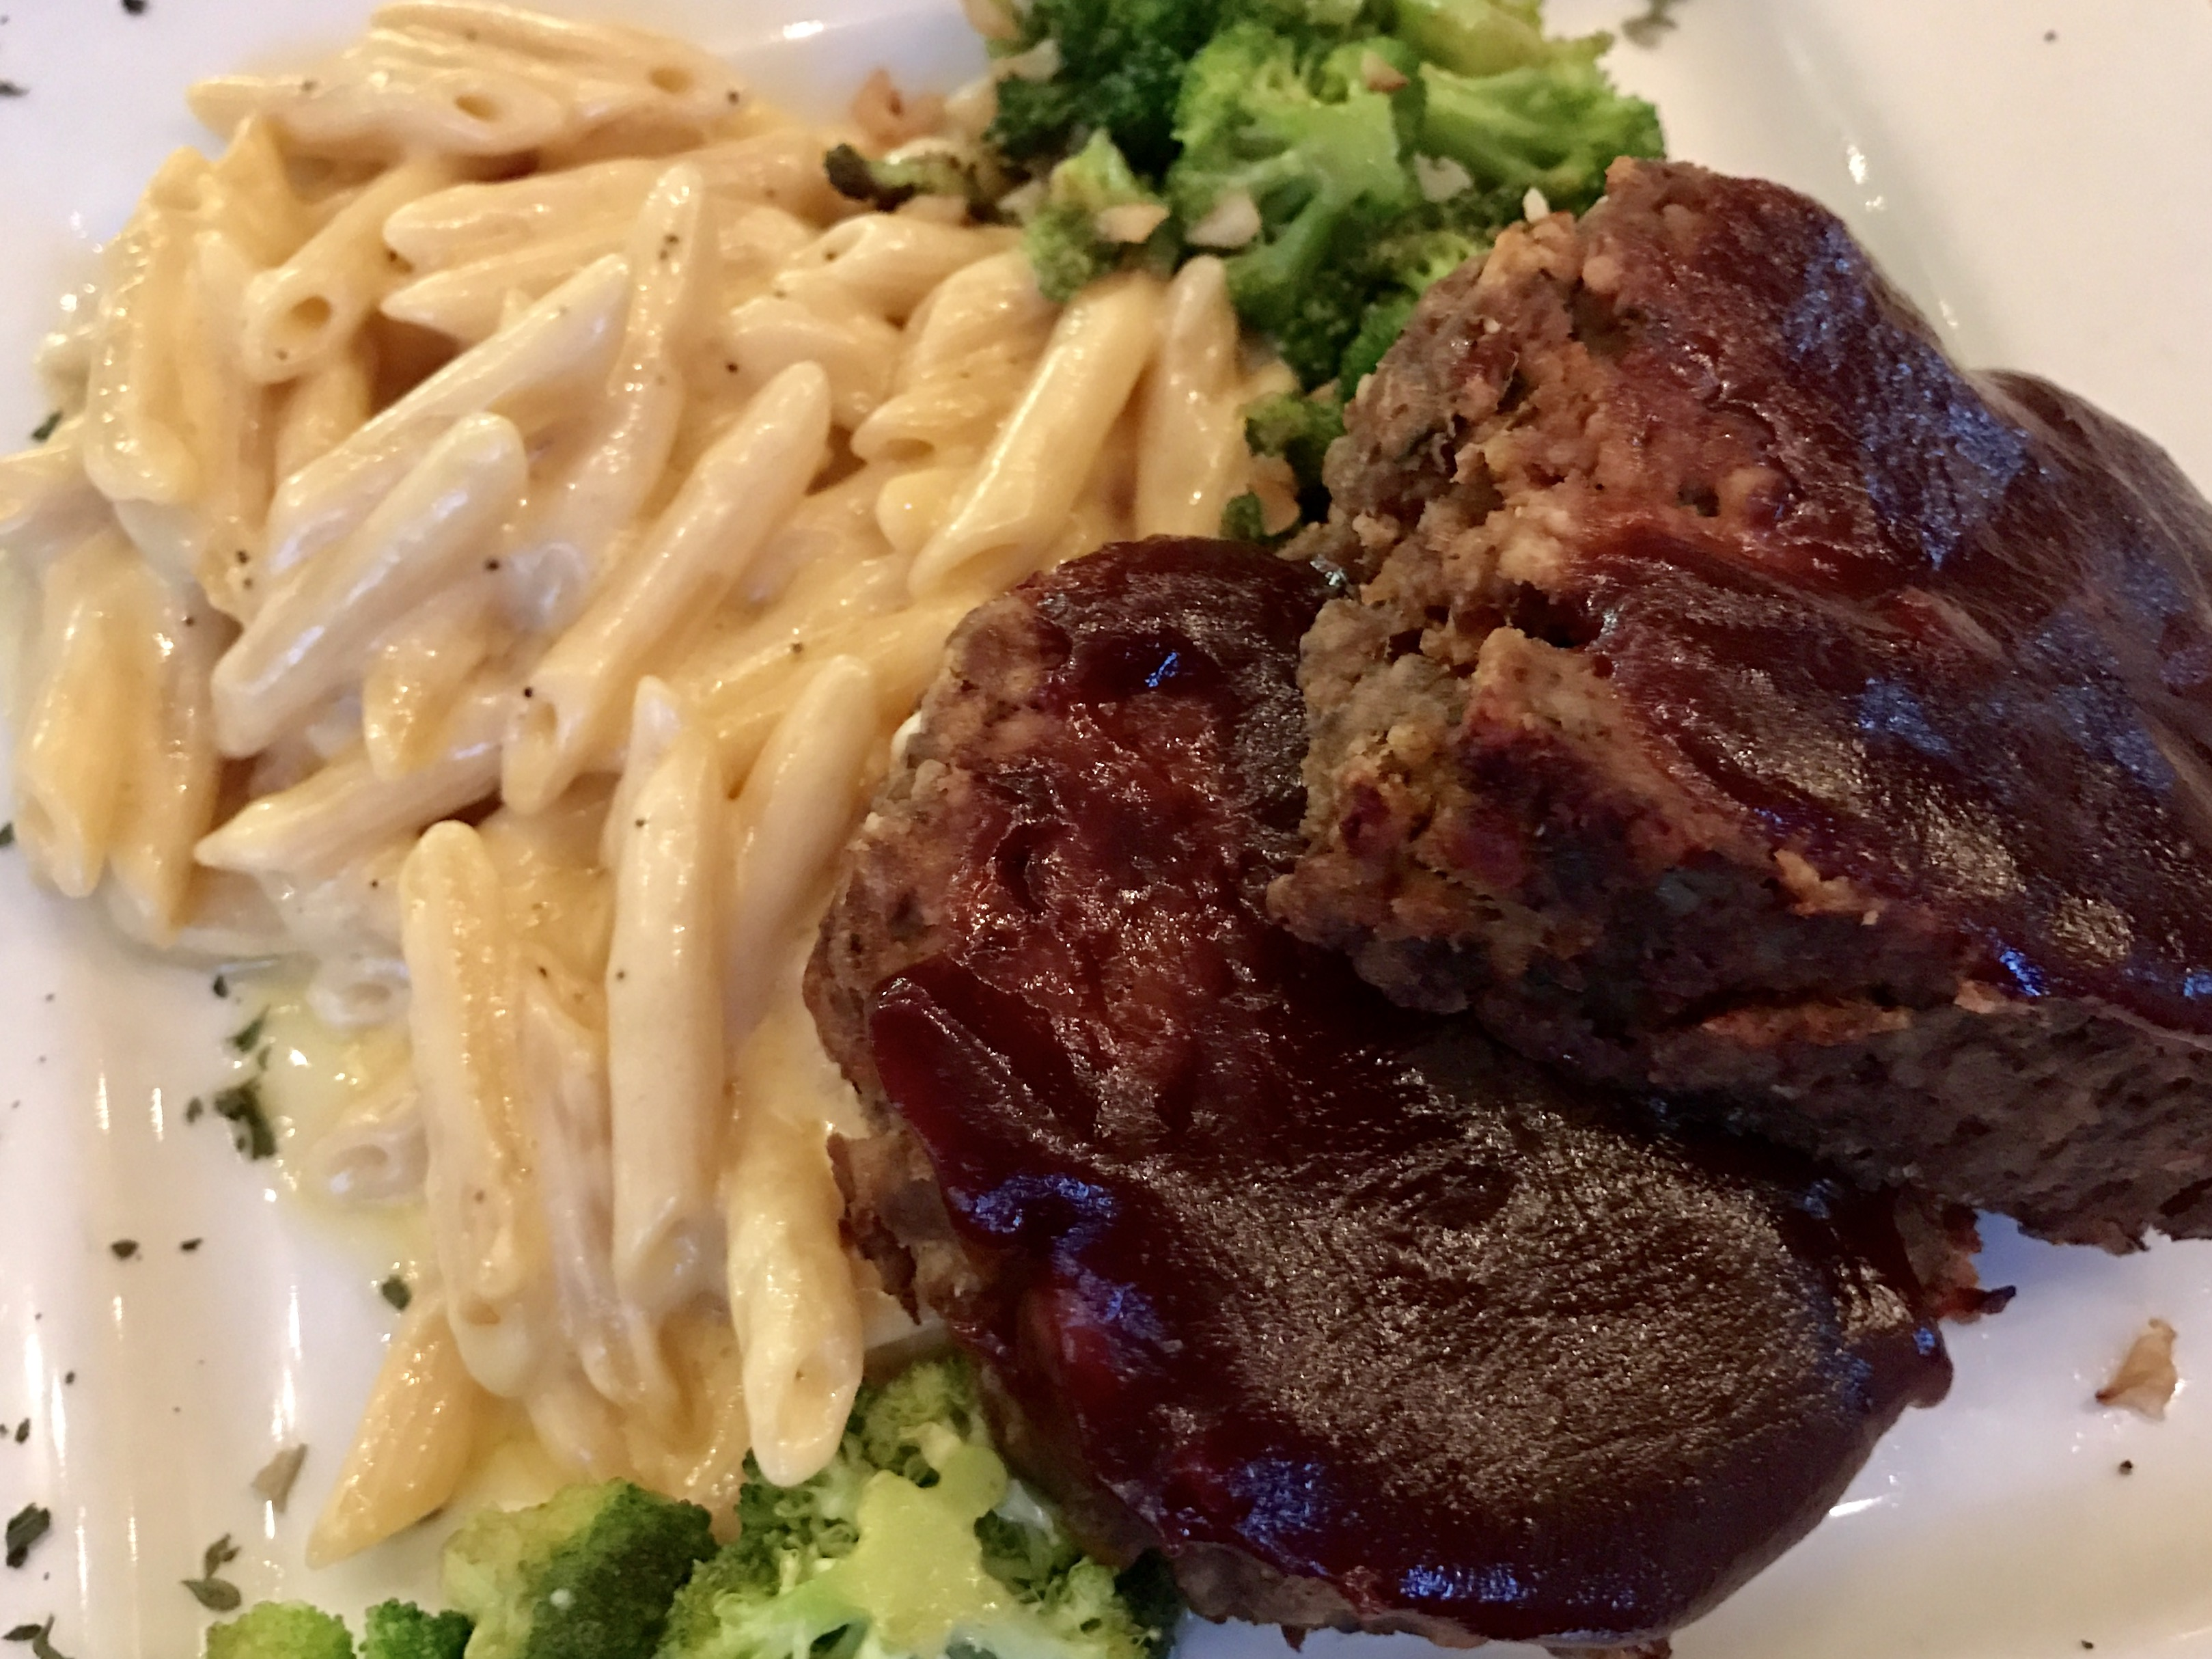 Meatloaf Special with Homemade Mac 'n' Cheese and Broccoli at Bowled